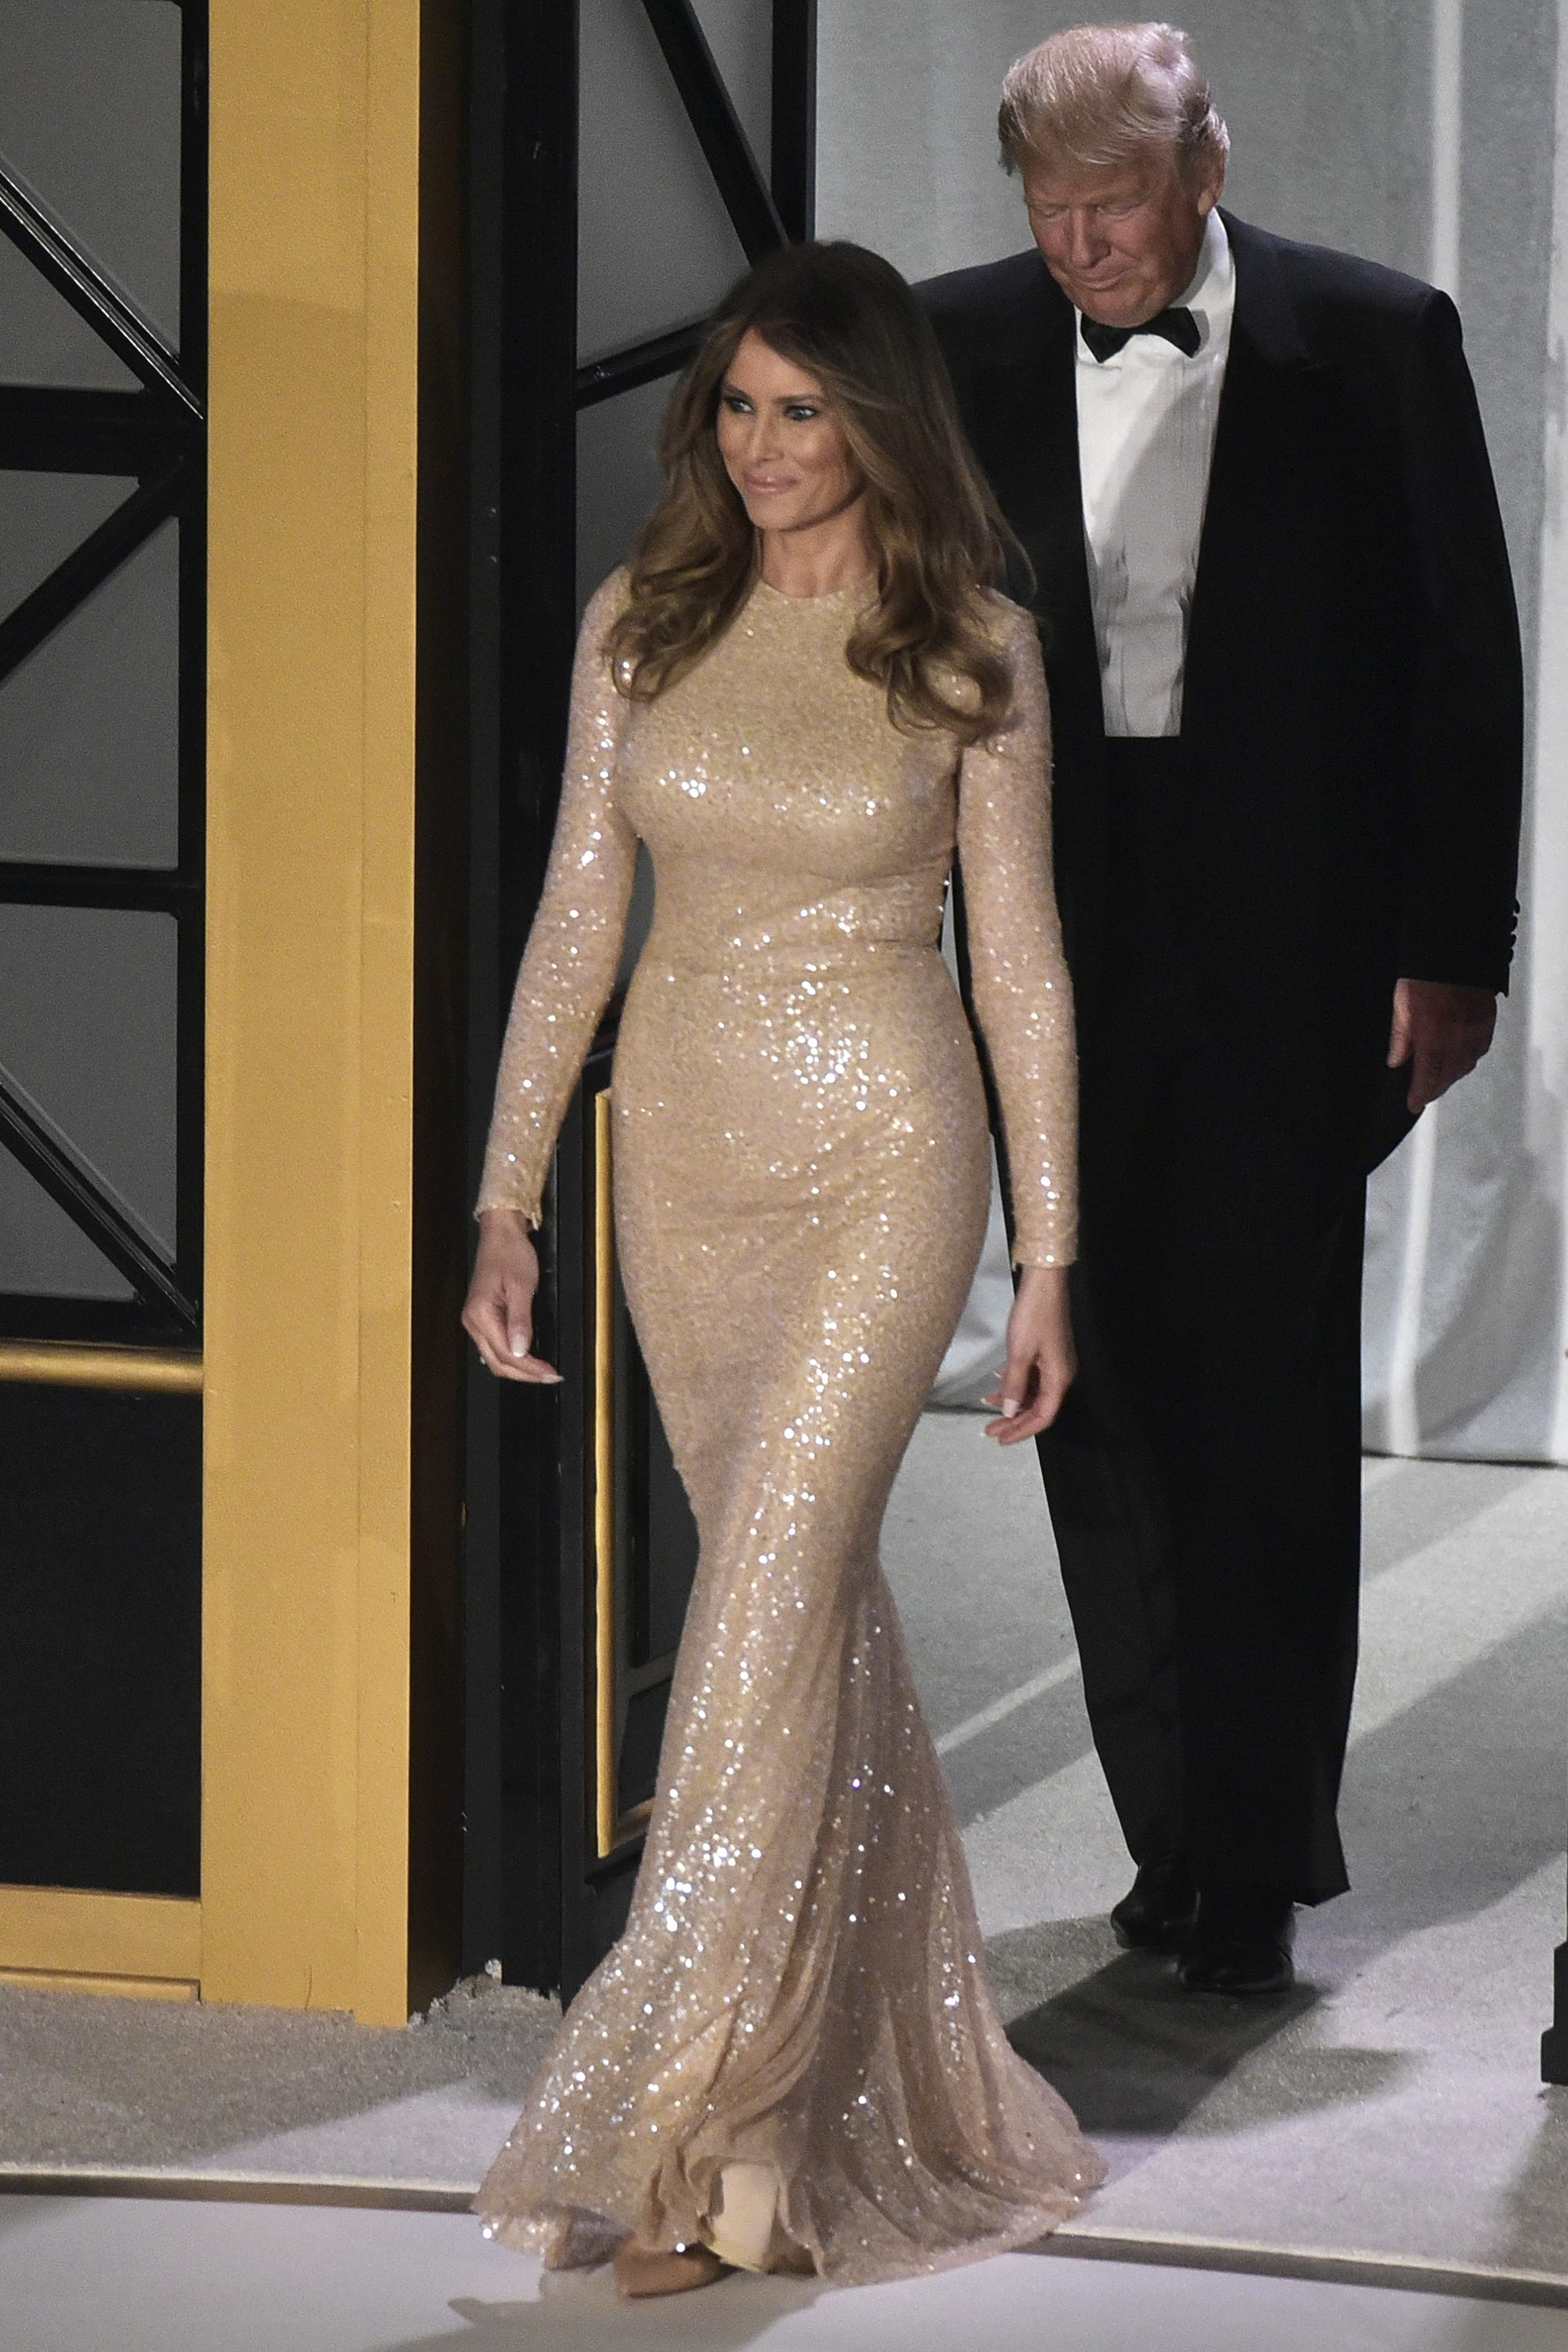 Melania Trump First Lady Wardrobe Fashion PR Backlash